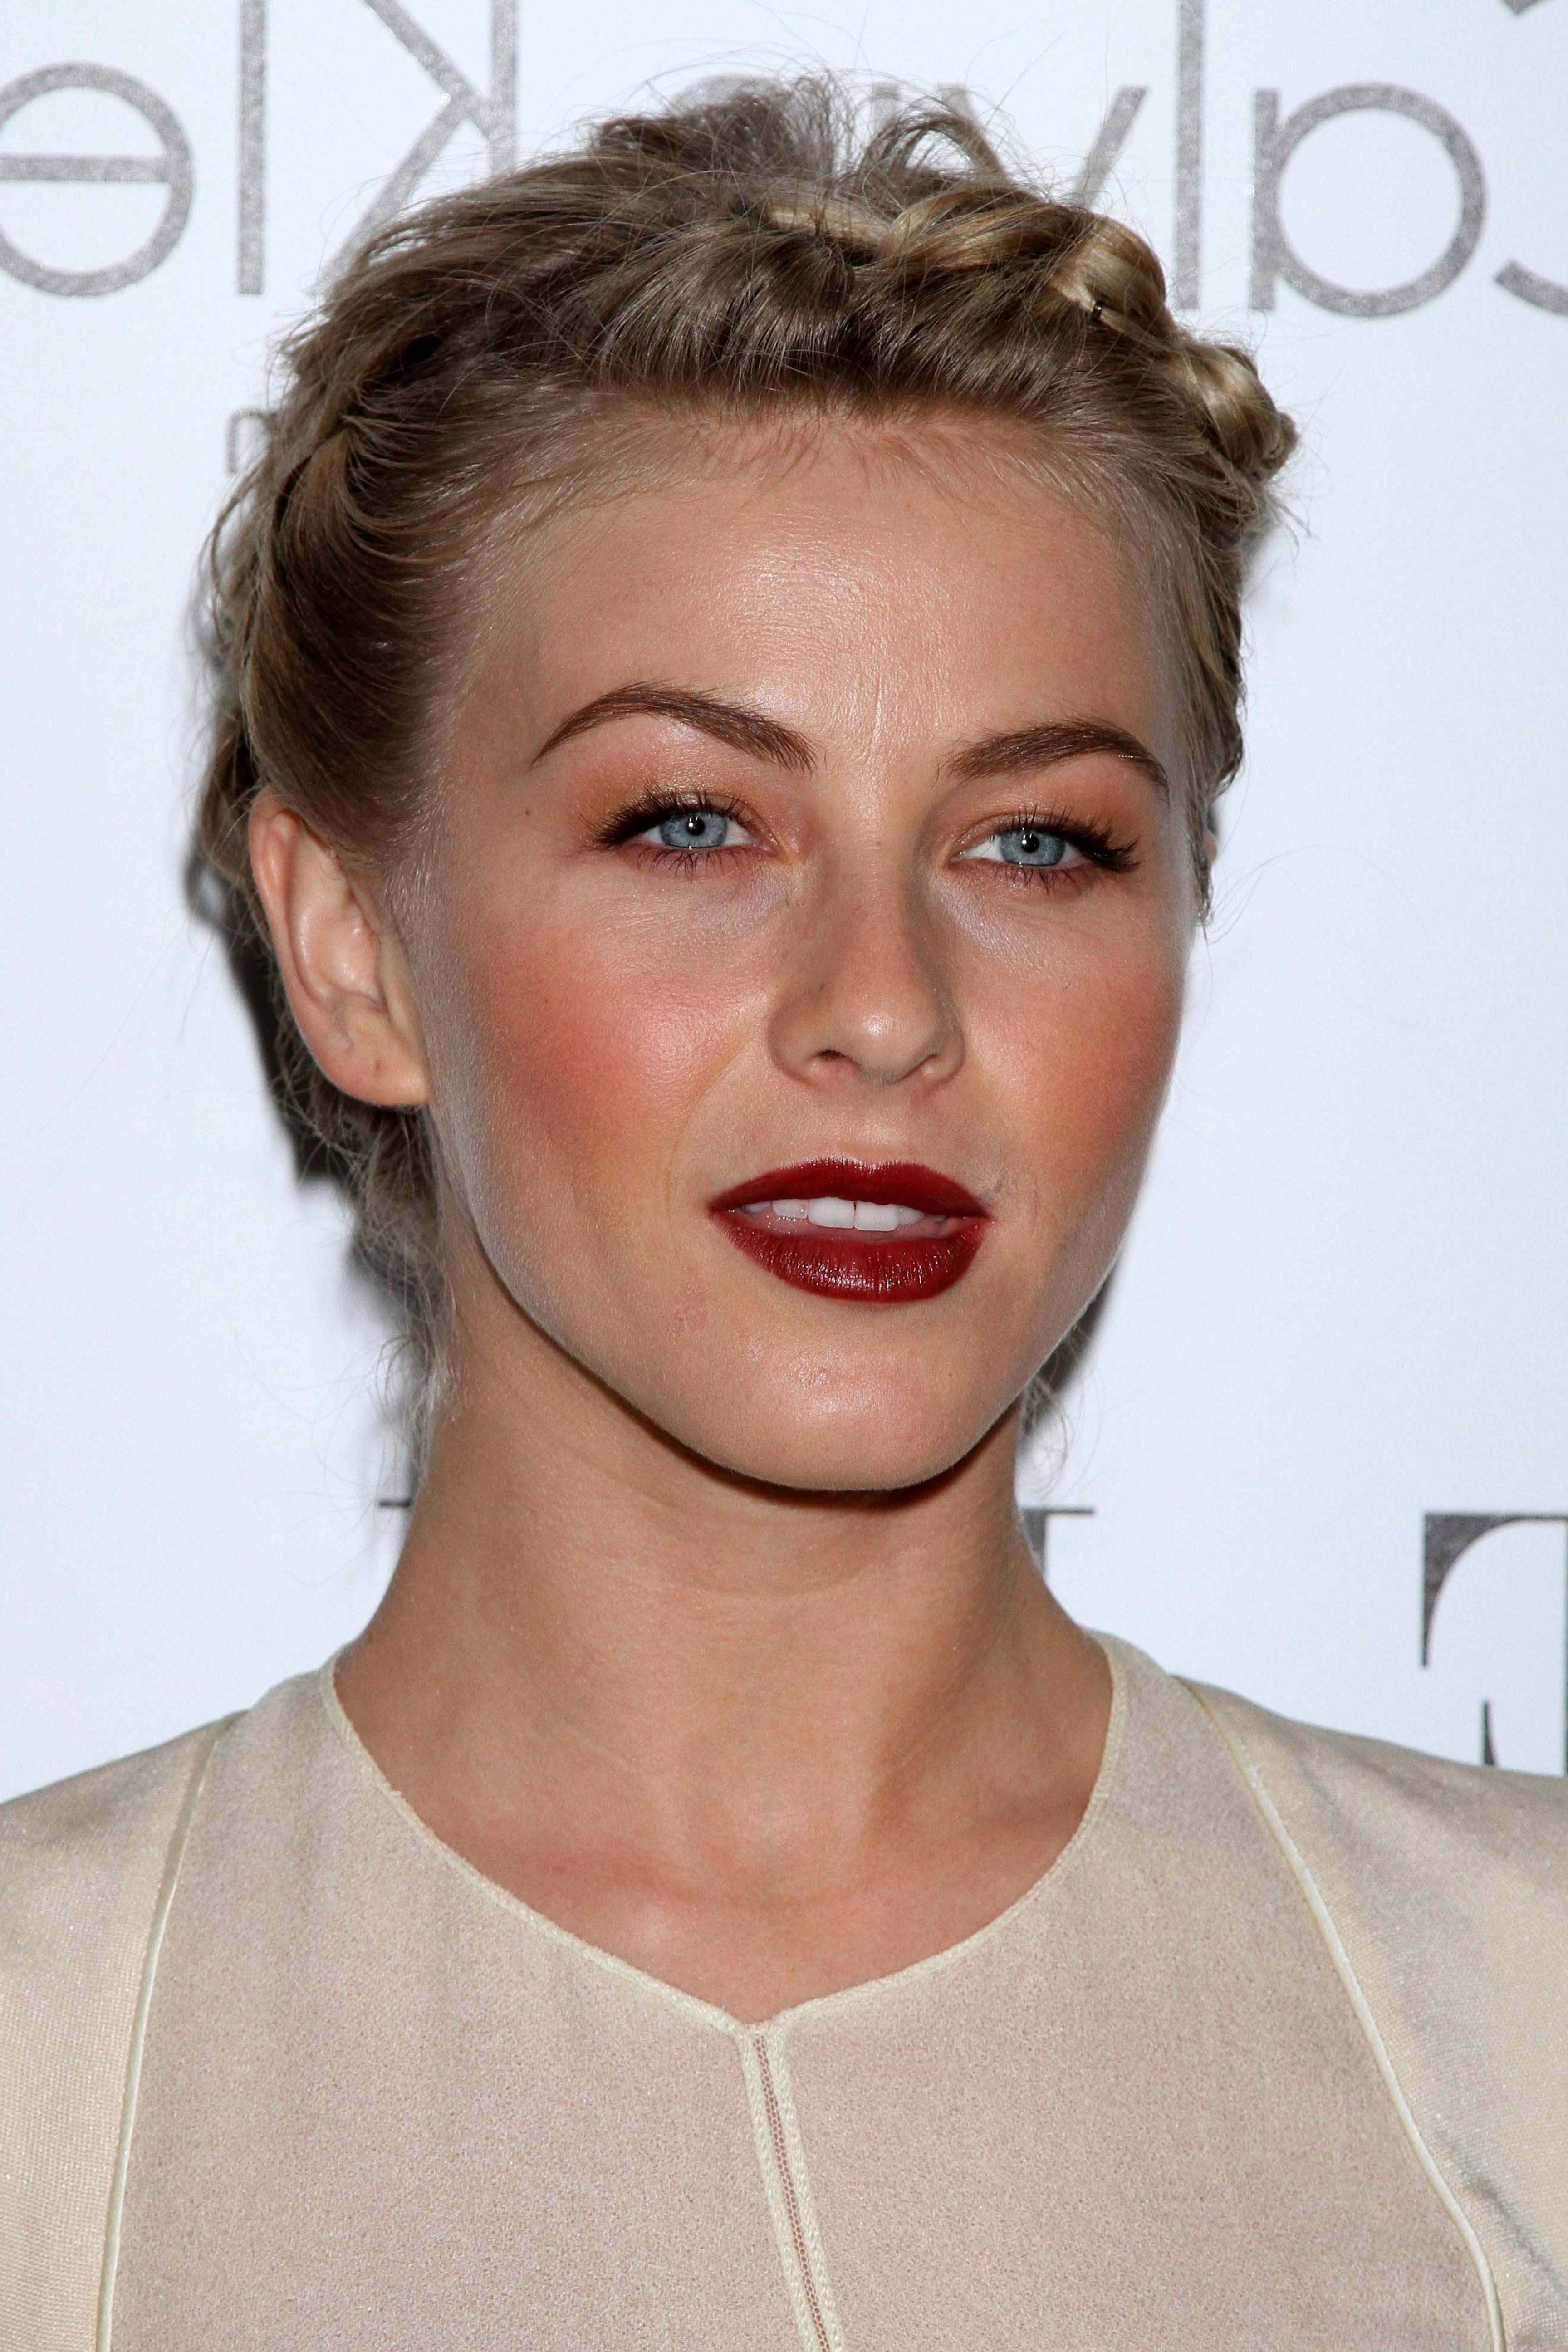 Get The Look: Julianne Hough Hairstyle (View 5 of 15)